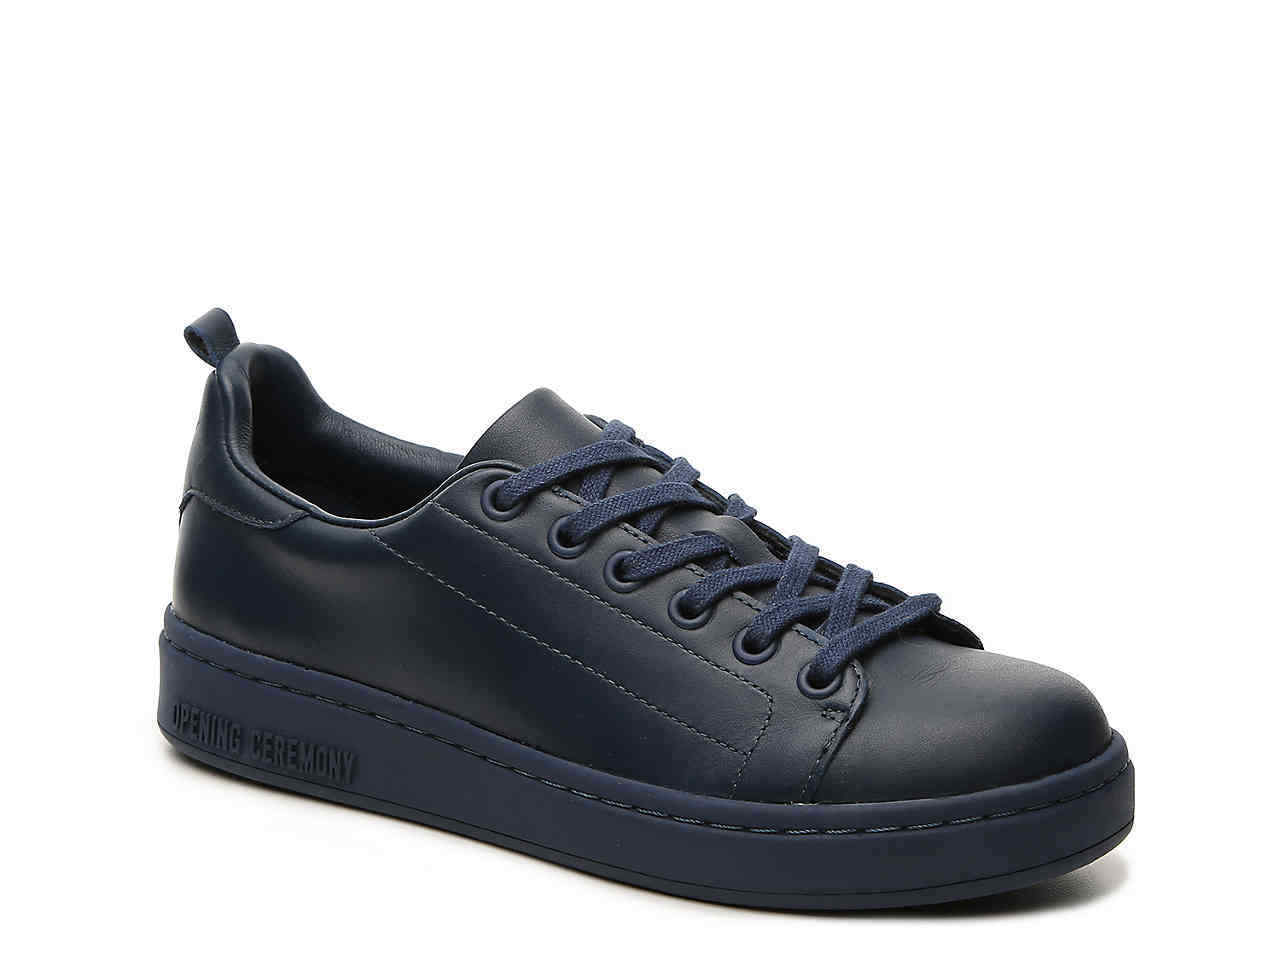 229 NWT OPENING CEREMONY AZULL Low Top lace-Up LEATHER zapatillas Sz 5 NAVY azul